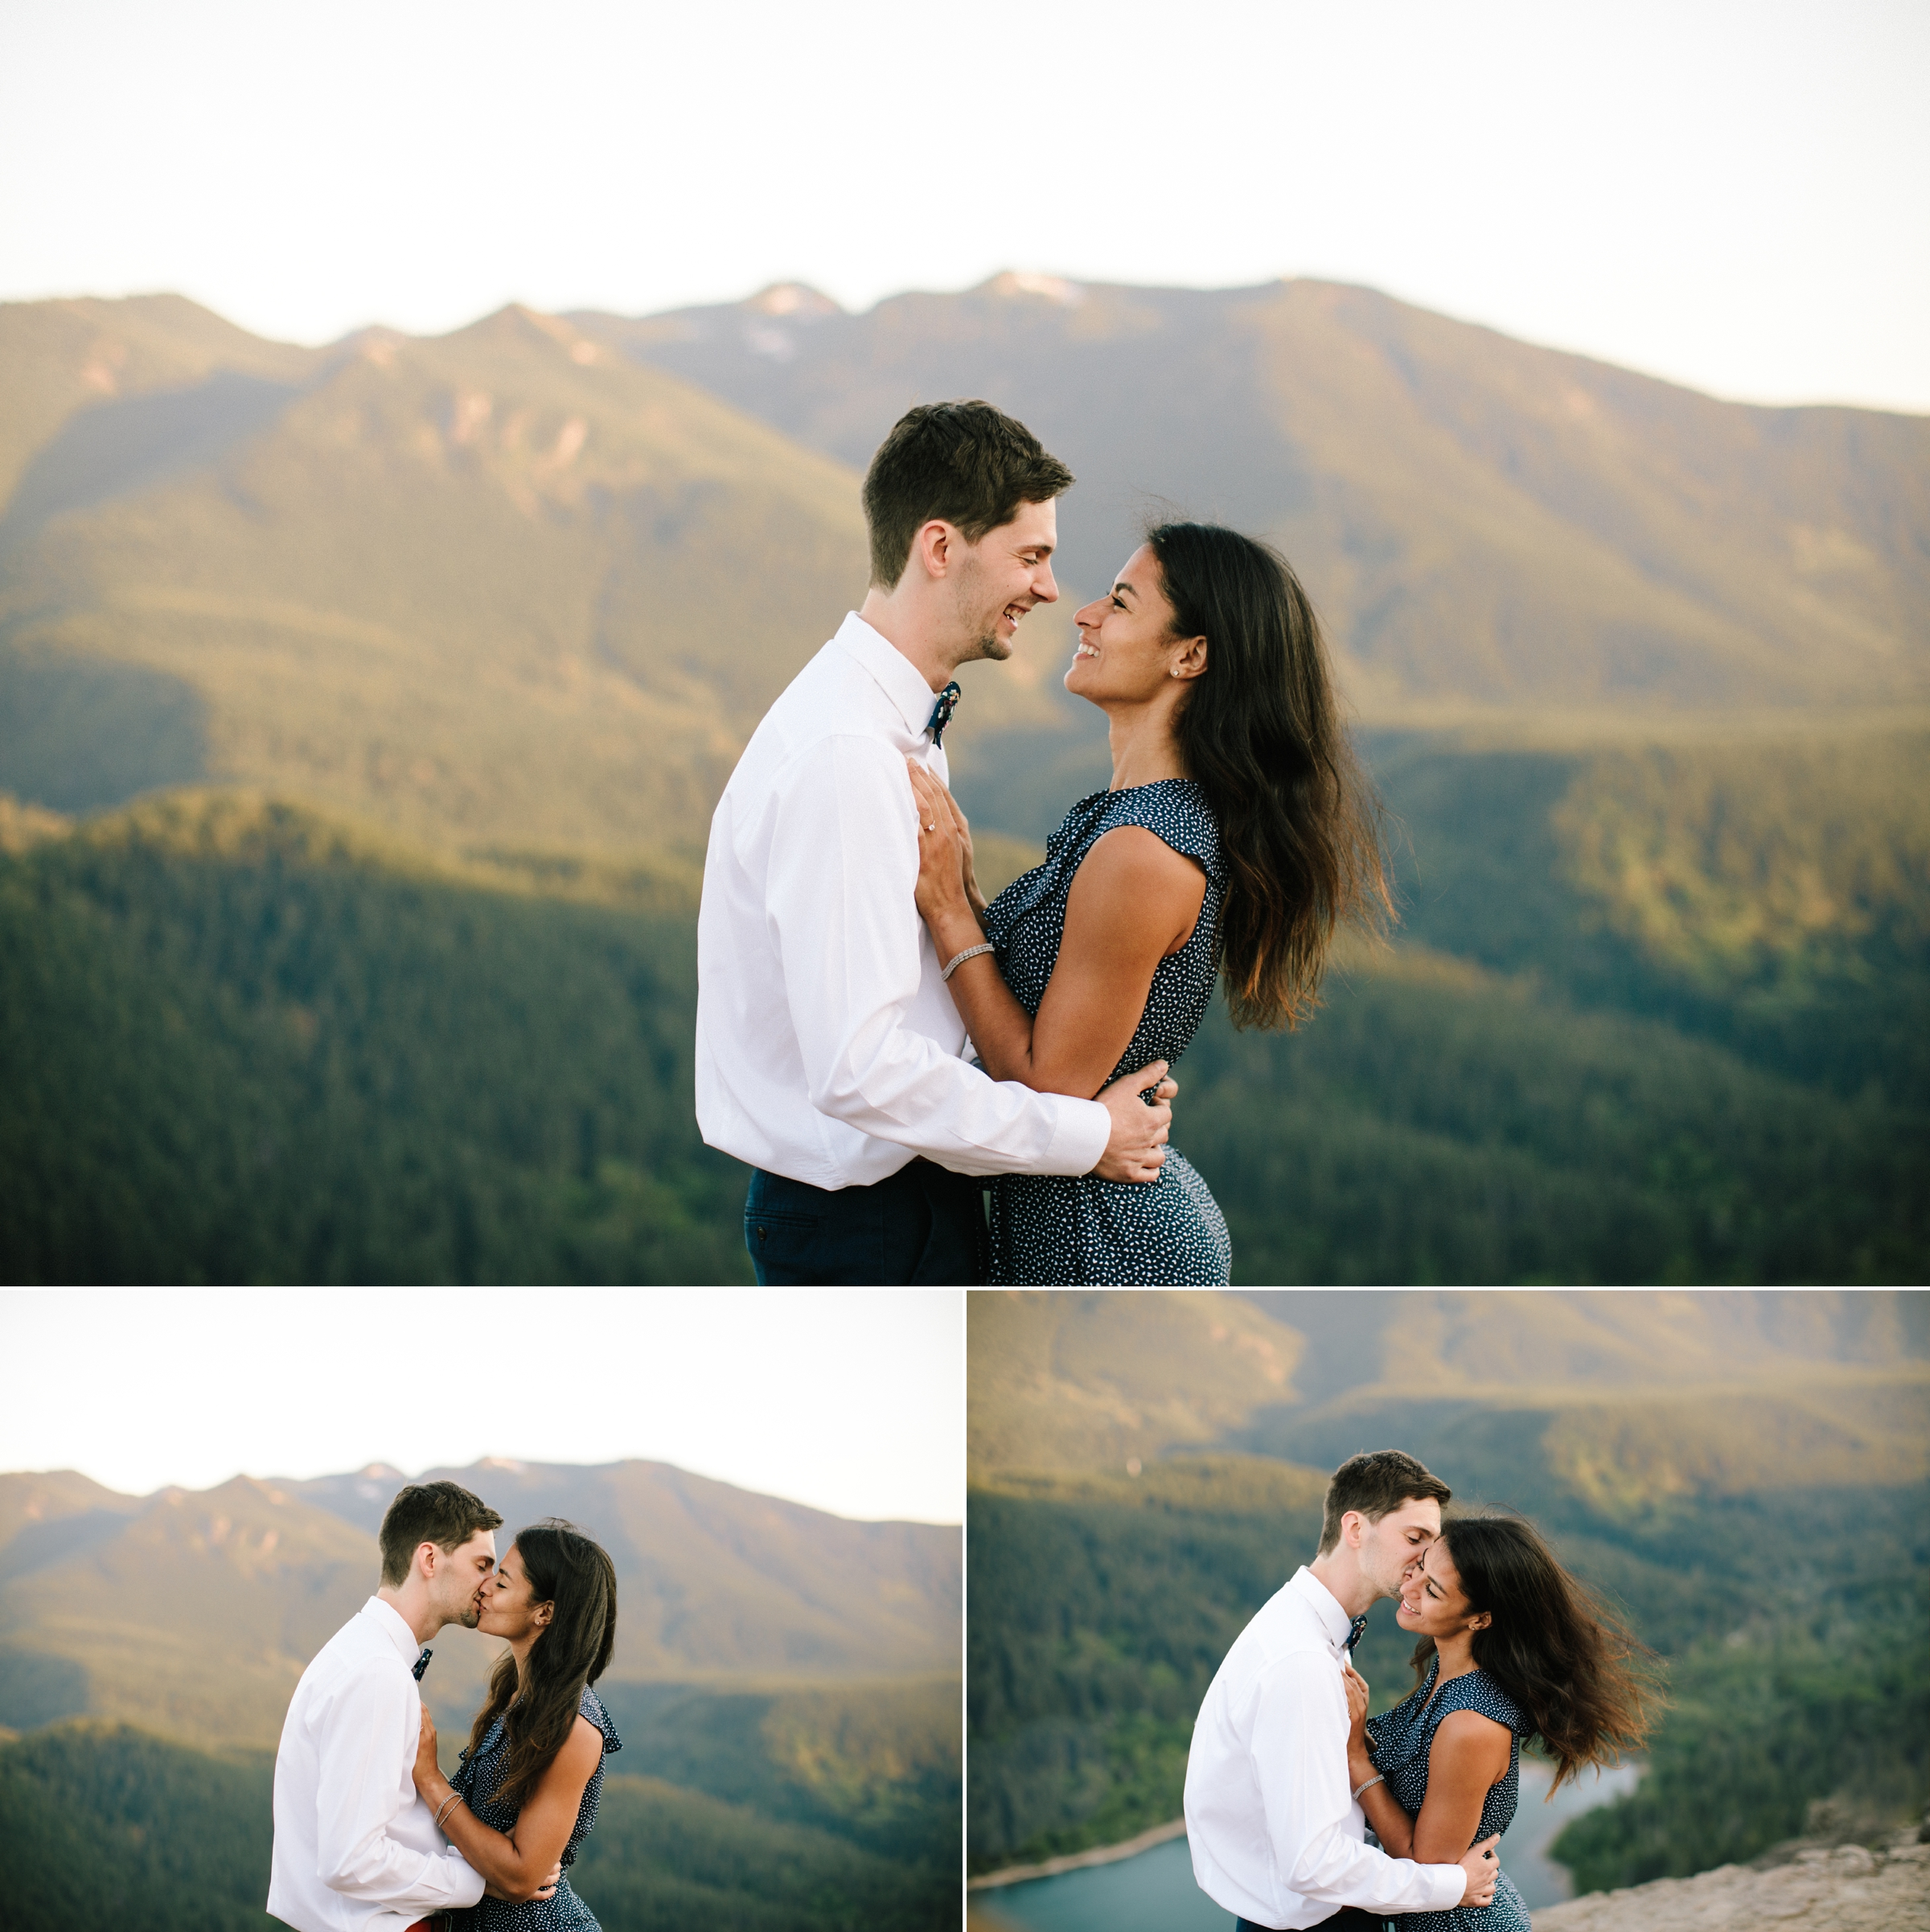 adventure-mountain-top-elopement-photographer-pnw-seattle-washington-wedding-engagement-hike-photography-catie-bergman_0026.jpg